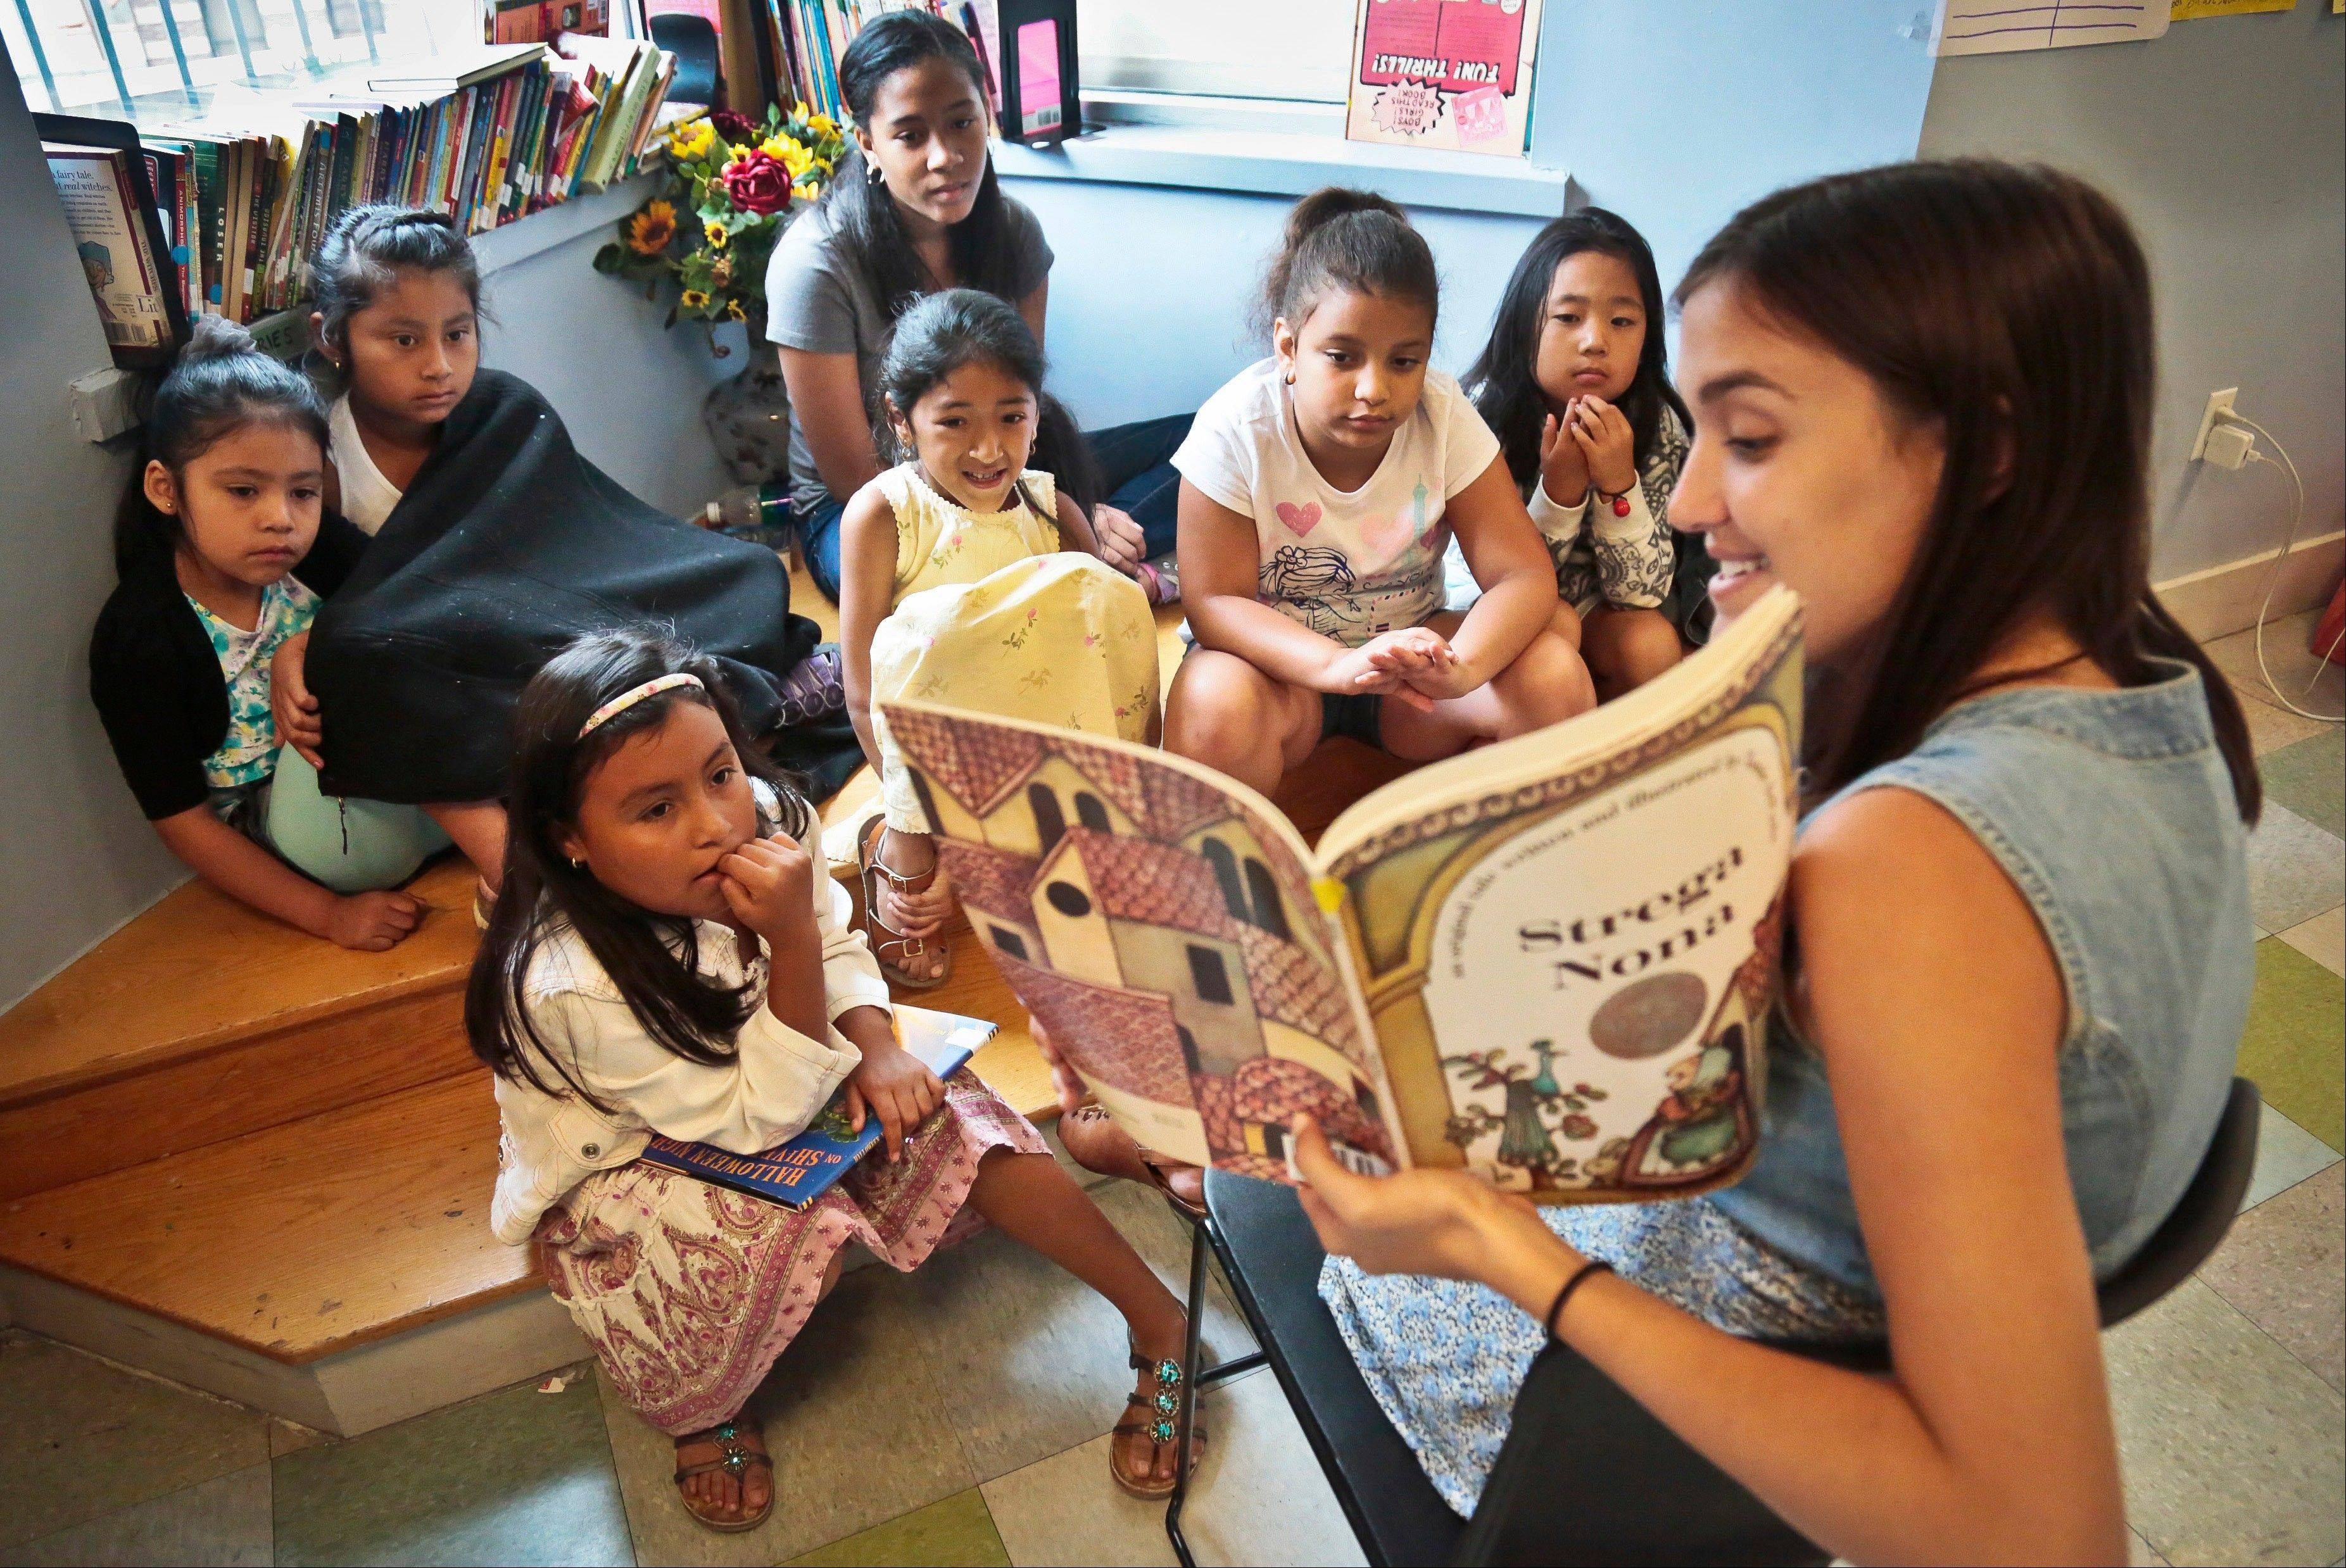 Sophie Mortner, foreground right, reads aloud for youngsters attending LitCamp, a summer reading program offered through the nonprofit literacy organization LitWorld, in the Harlem neighborhood of New York.